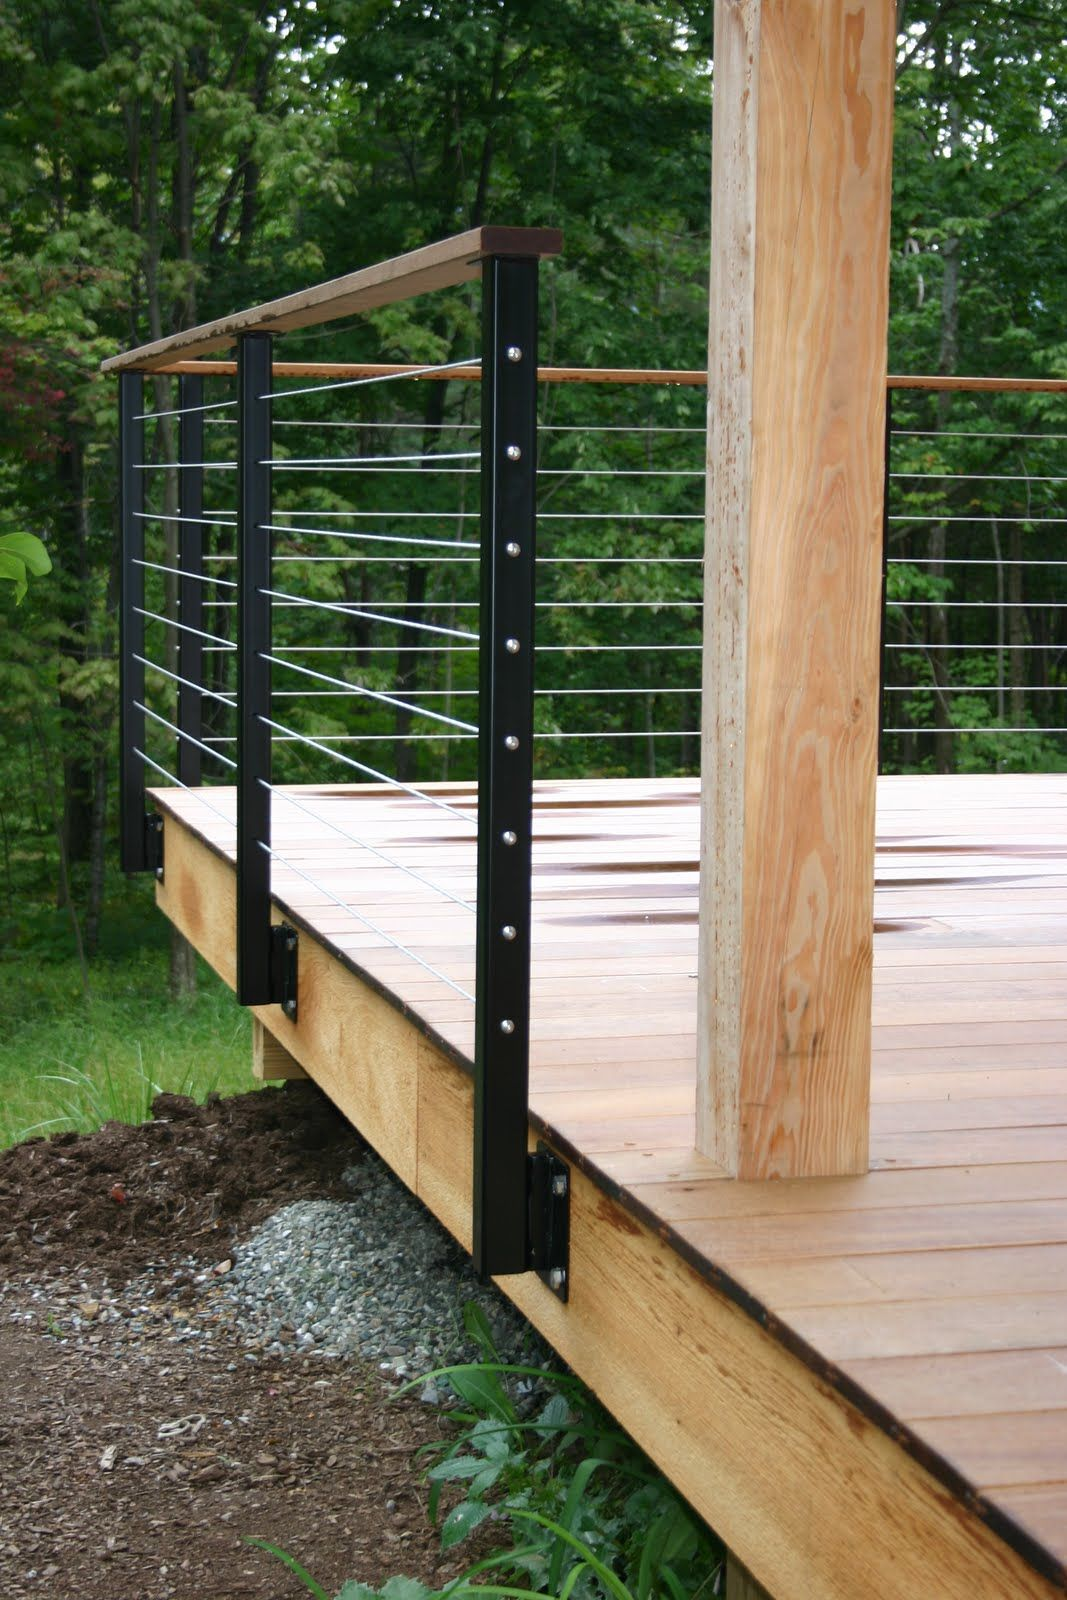 Deck Cable Railing Lattice Fence Style {..}Lattice Portion combined with  blind flaps